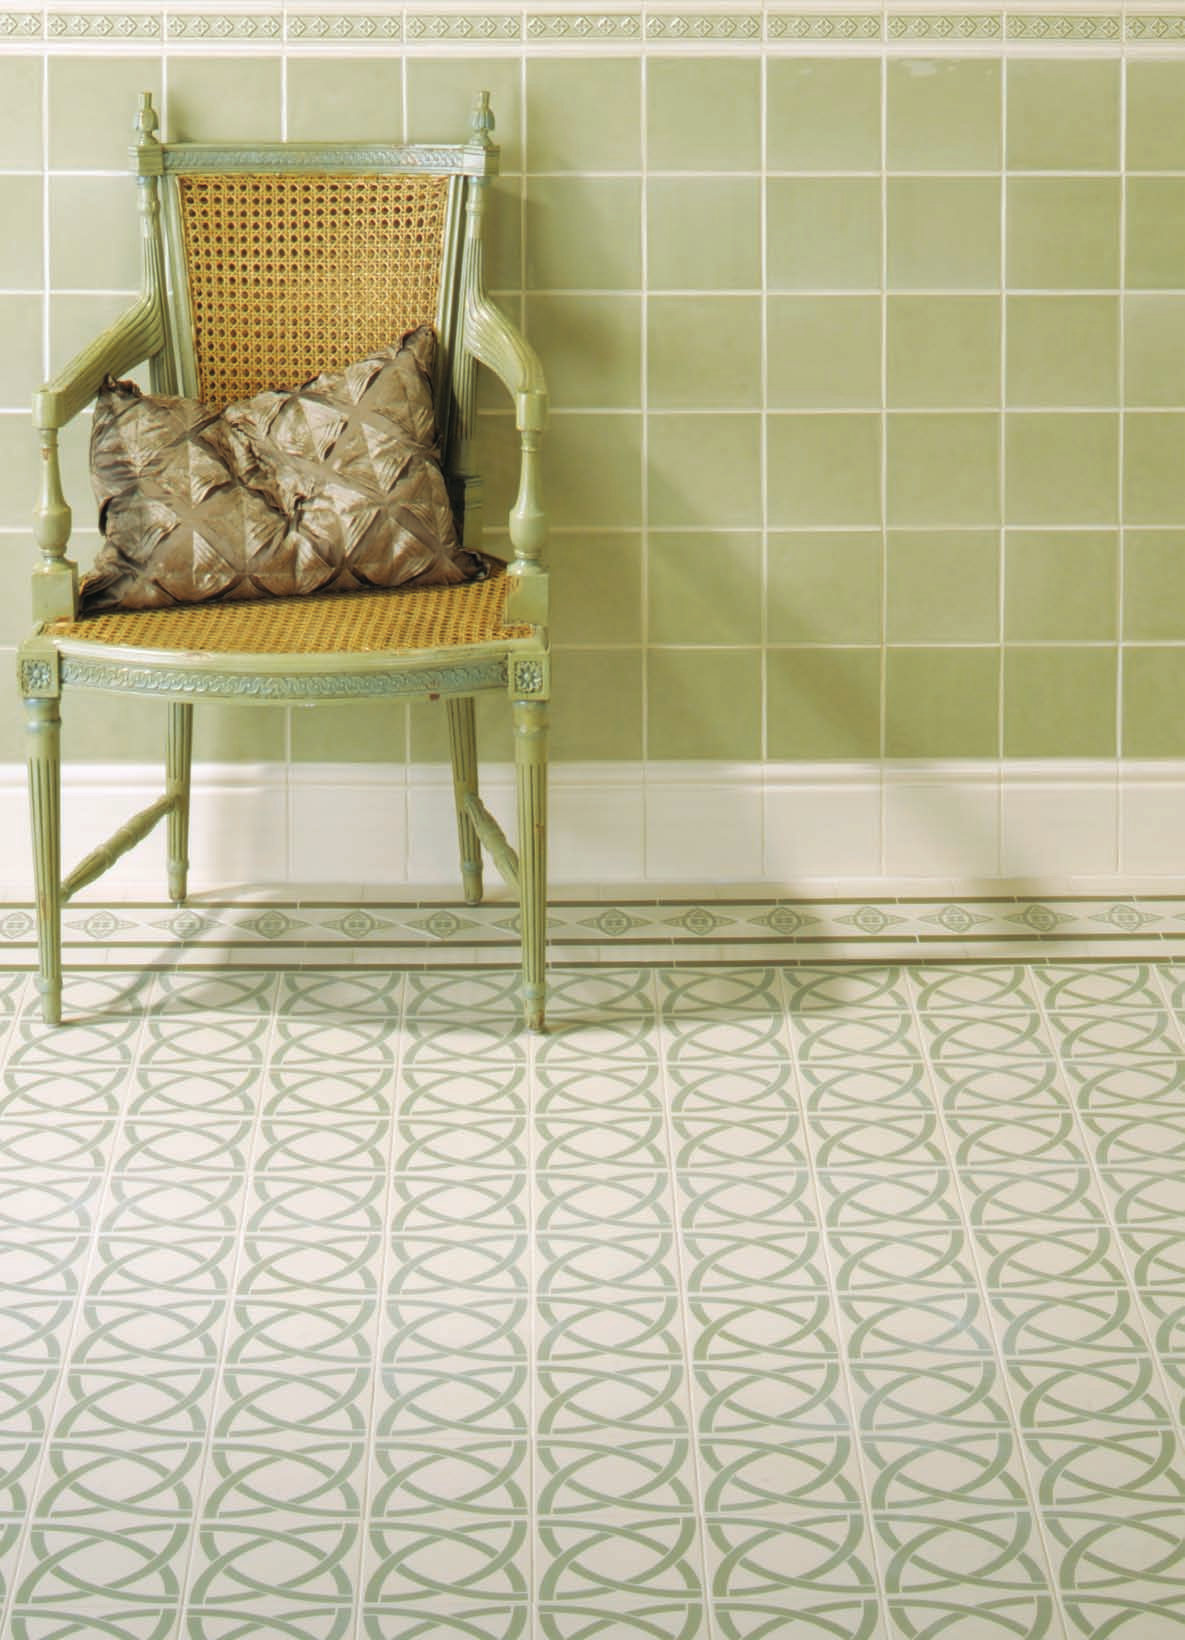 Victorian floor tiles dublin pattern with galway border in pale victorian floor tiles dublin pattern with galway border in pale green on white dailygadgetfo Choice Image